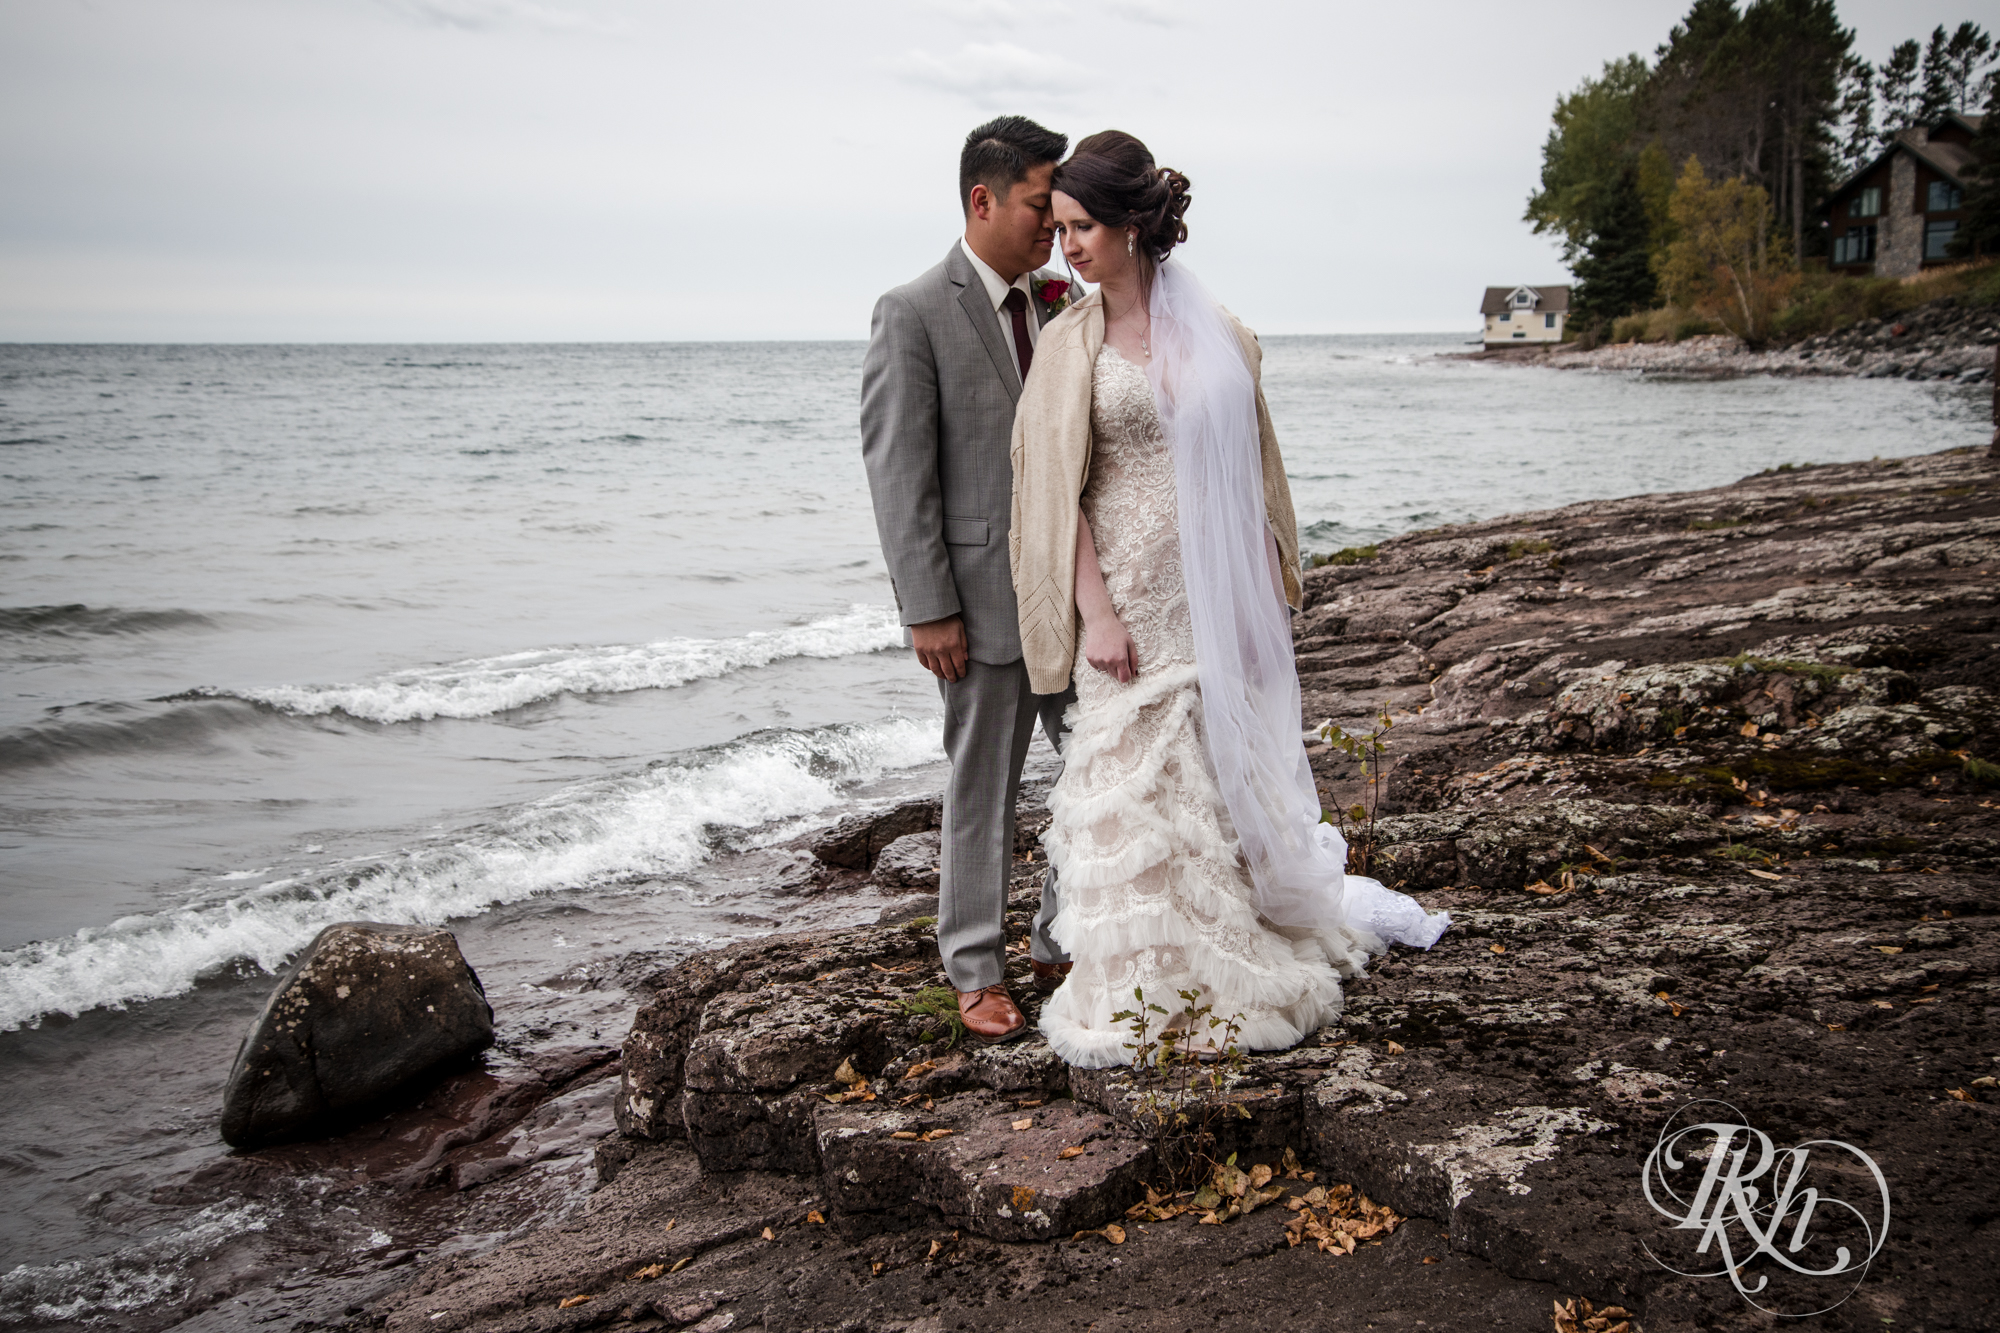 Abby & Anthony - North Shore Wedding Photography - Grand Superior Lodge - RKH Images - Blog (36 of 57).jpg